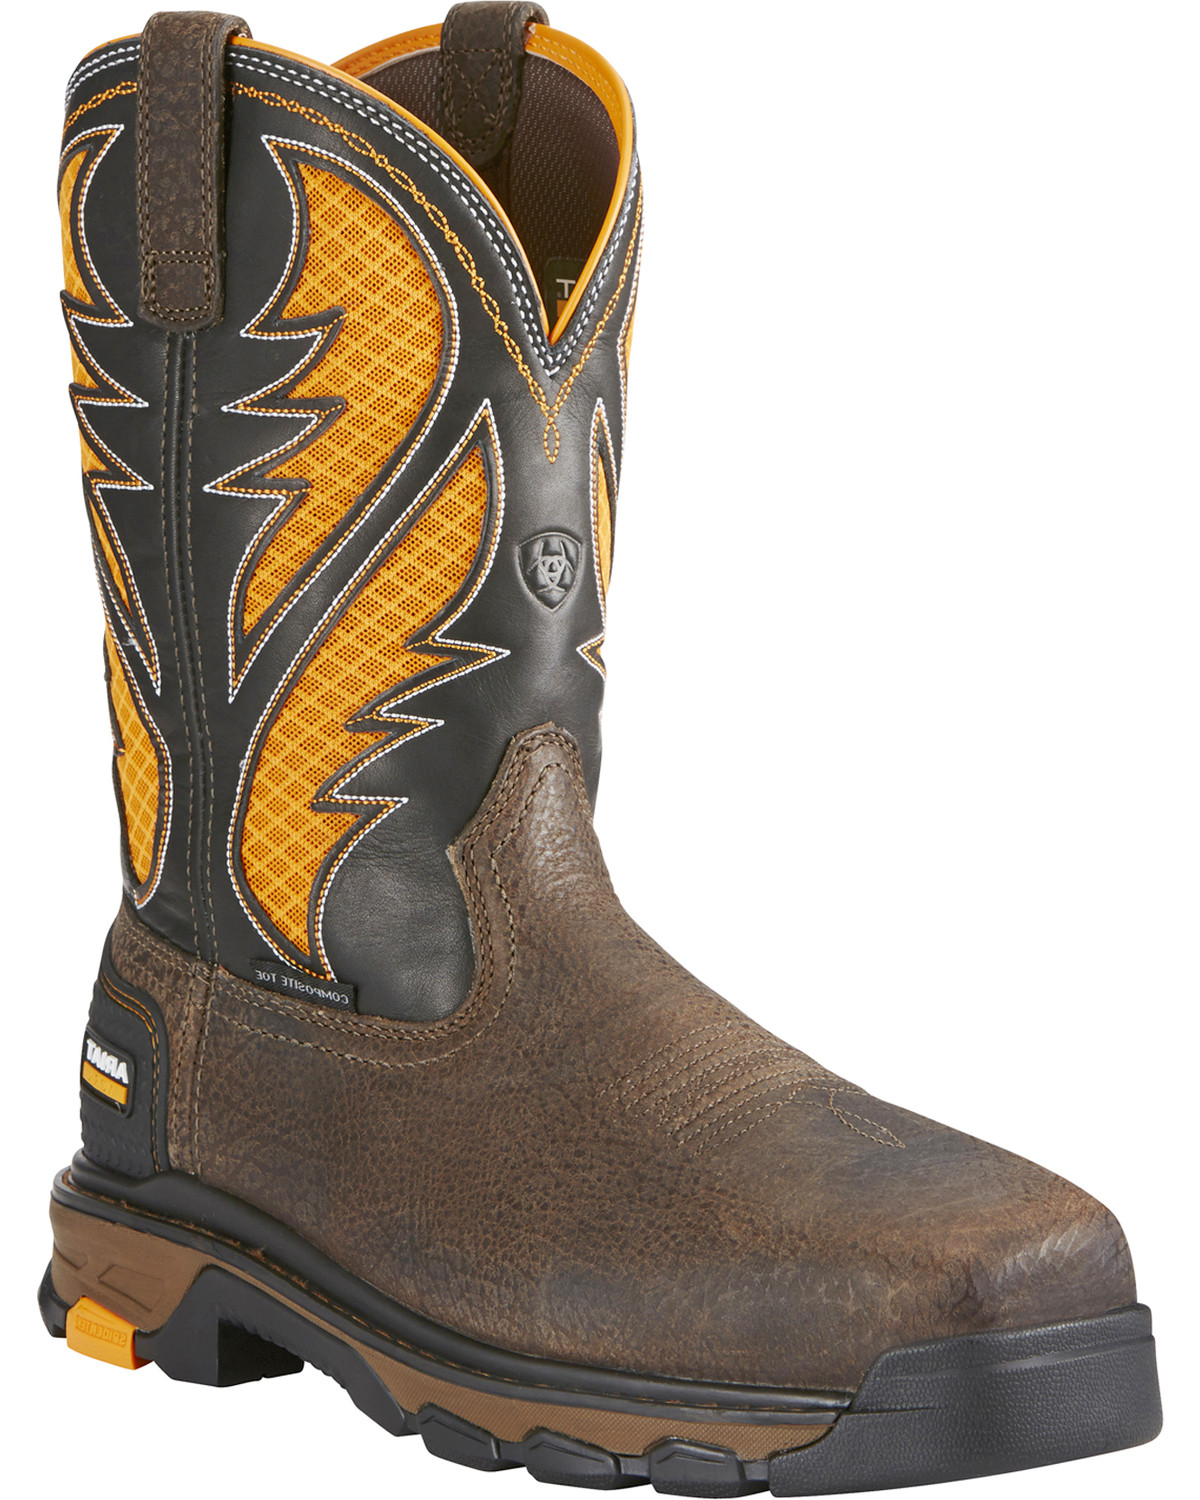 Ariat Men's Intrepid VentTEK Comp Toe Pull-On Safety Work Boots